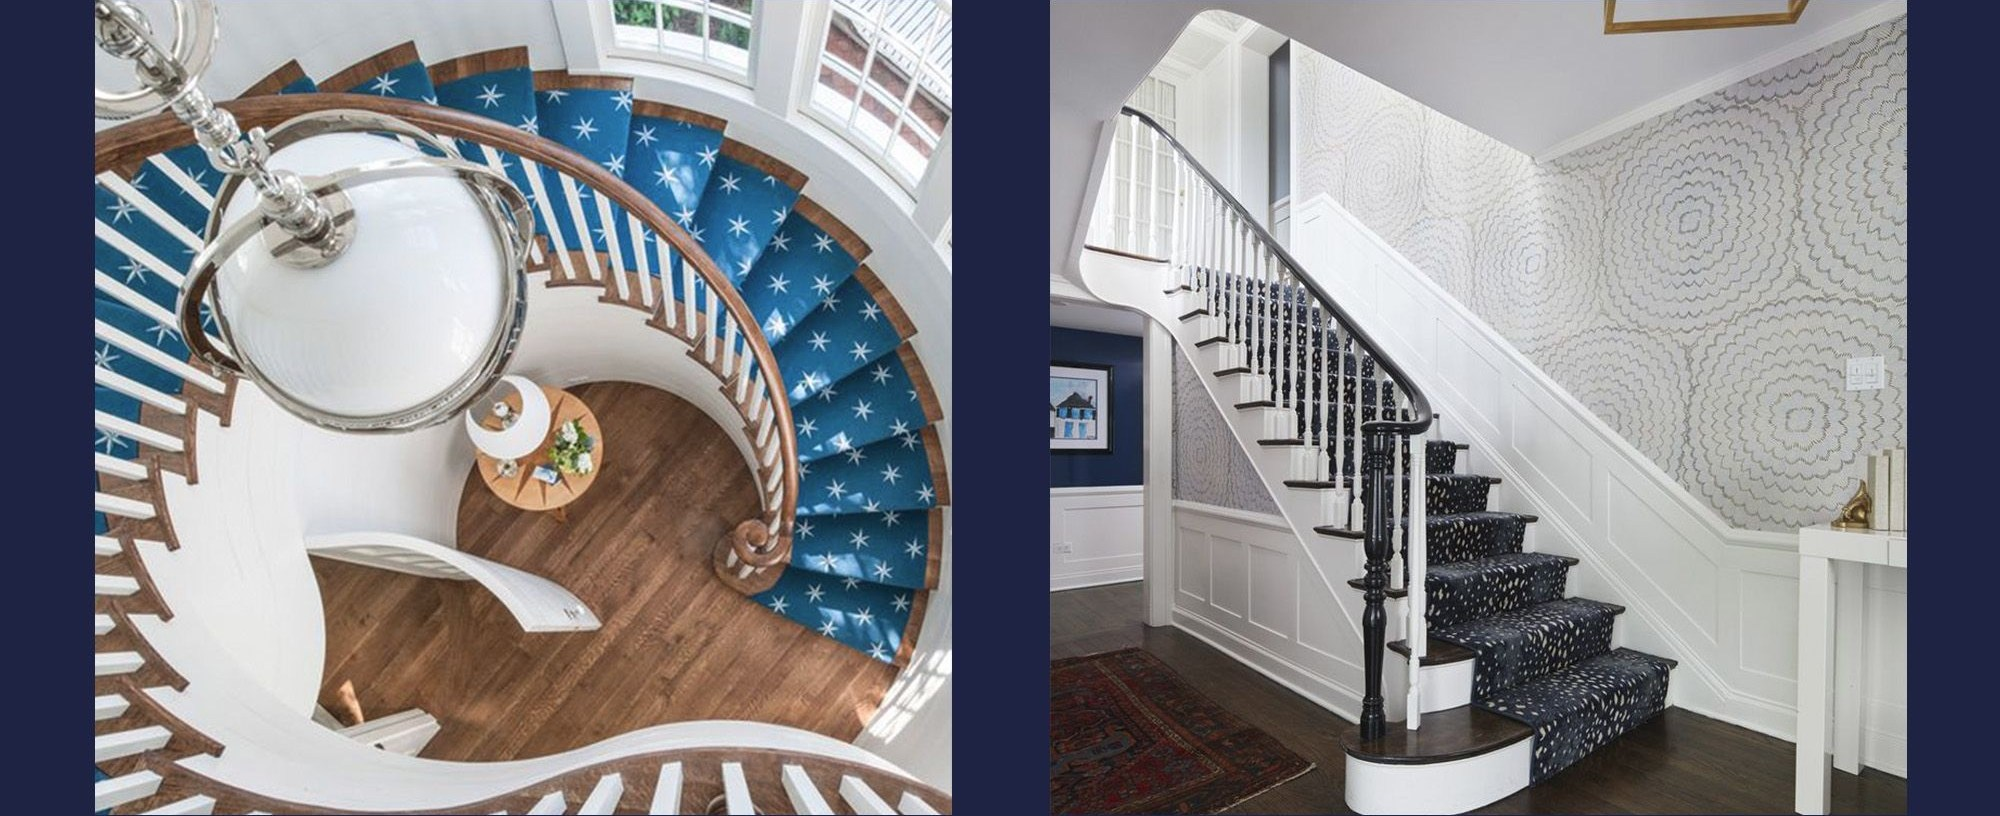 25 Stunning Carpeted Staircase Ideas Most Beautiful Staircase   Best Carpet For Stairs 2019   Stair Runners   Stair Railing   Berber Carpet   Wall Carpet   Carpet Tiles